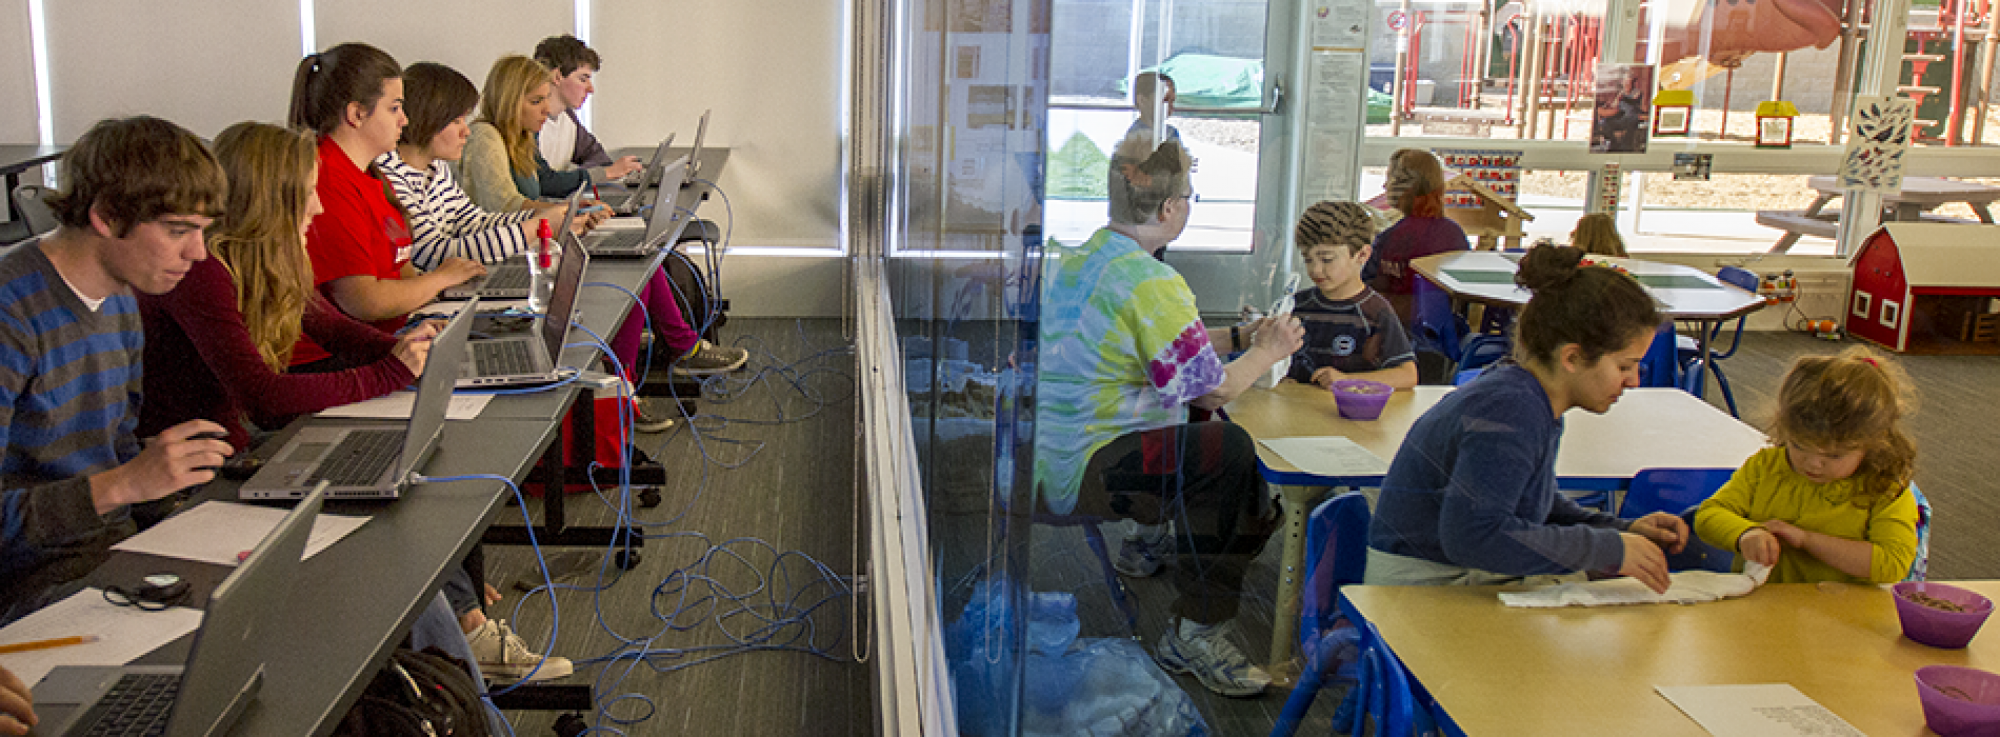 Psychology students observe children through a one-way glass at the Grinnell College Preschool